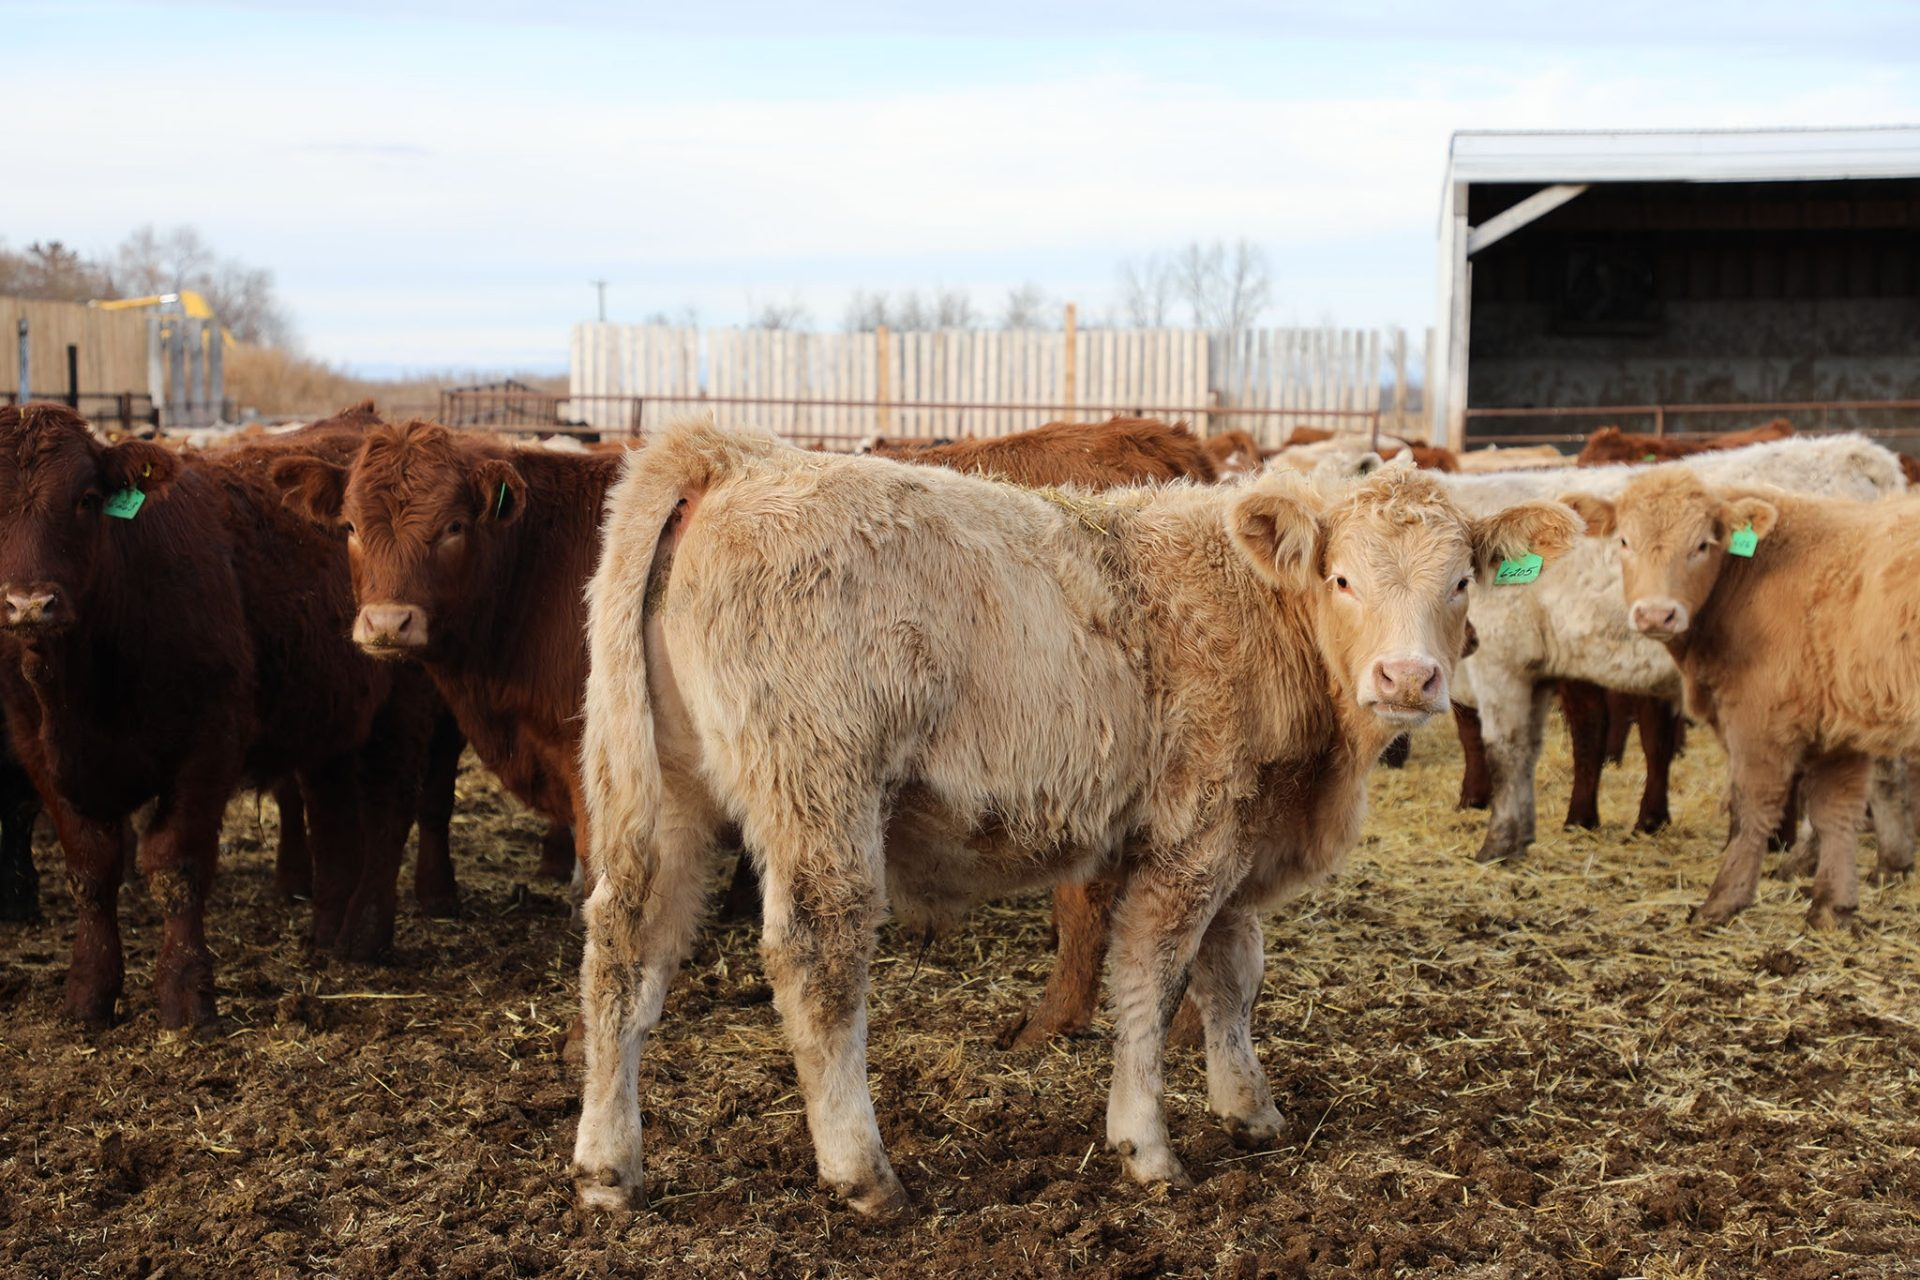 Group of beef cattle in Feedlot Yard